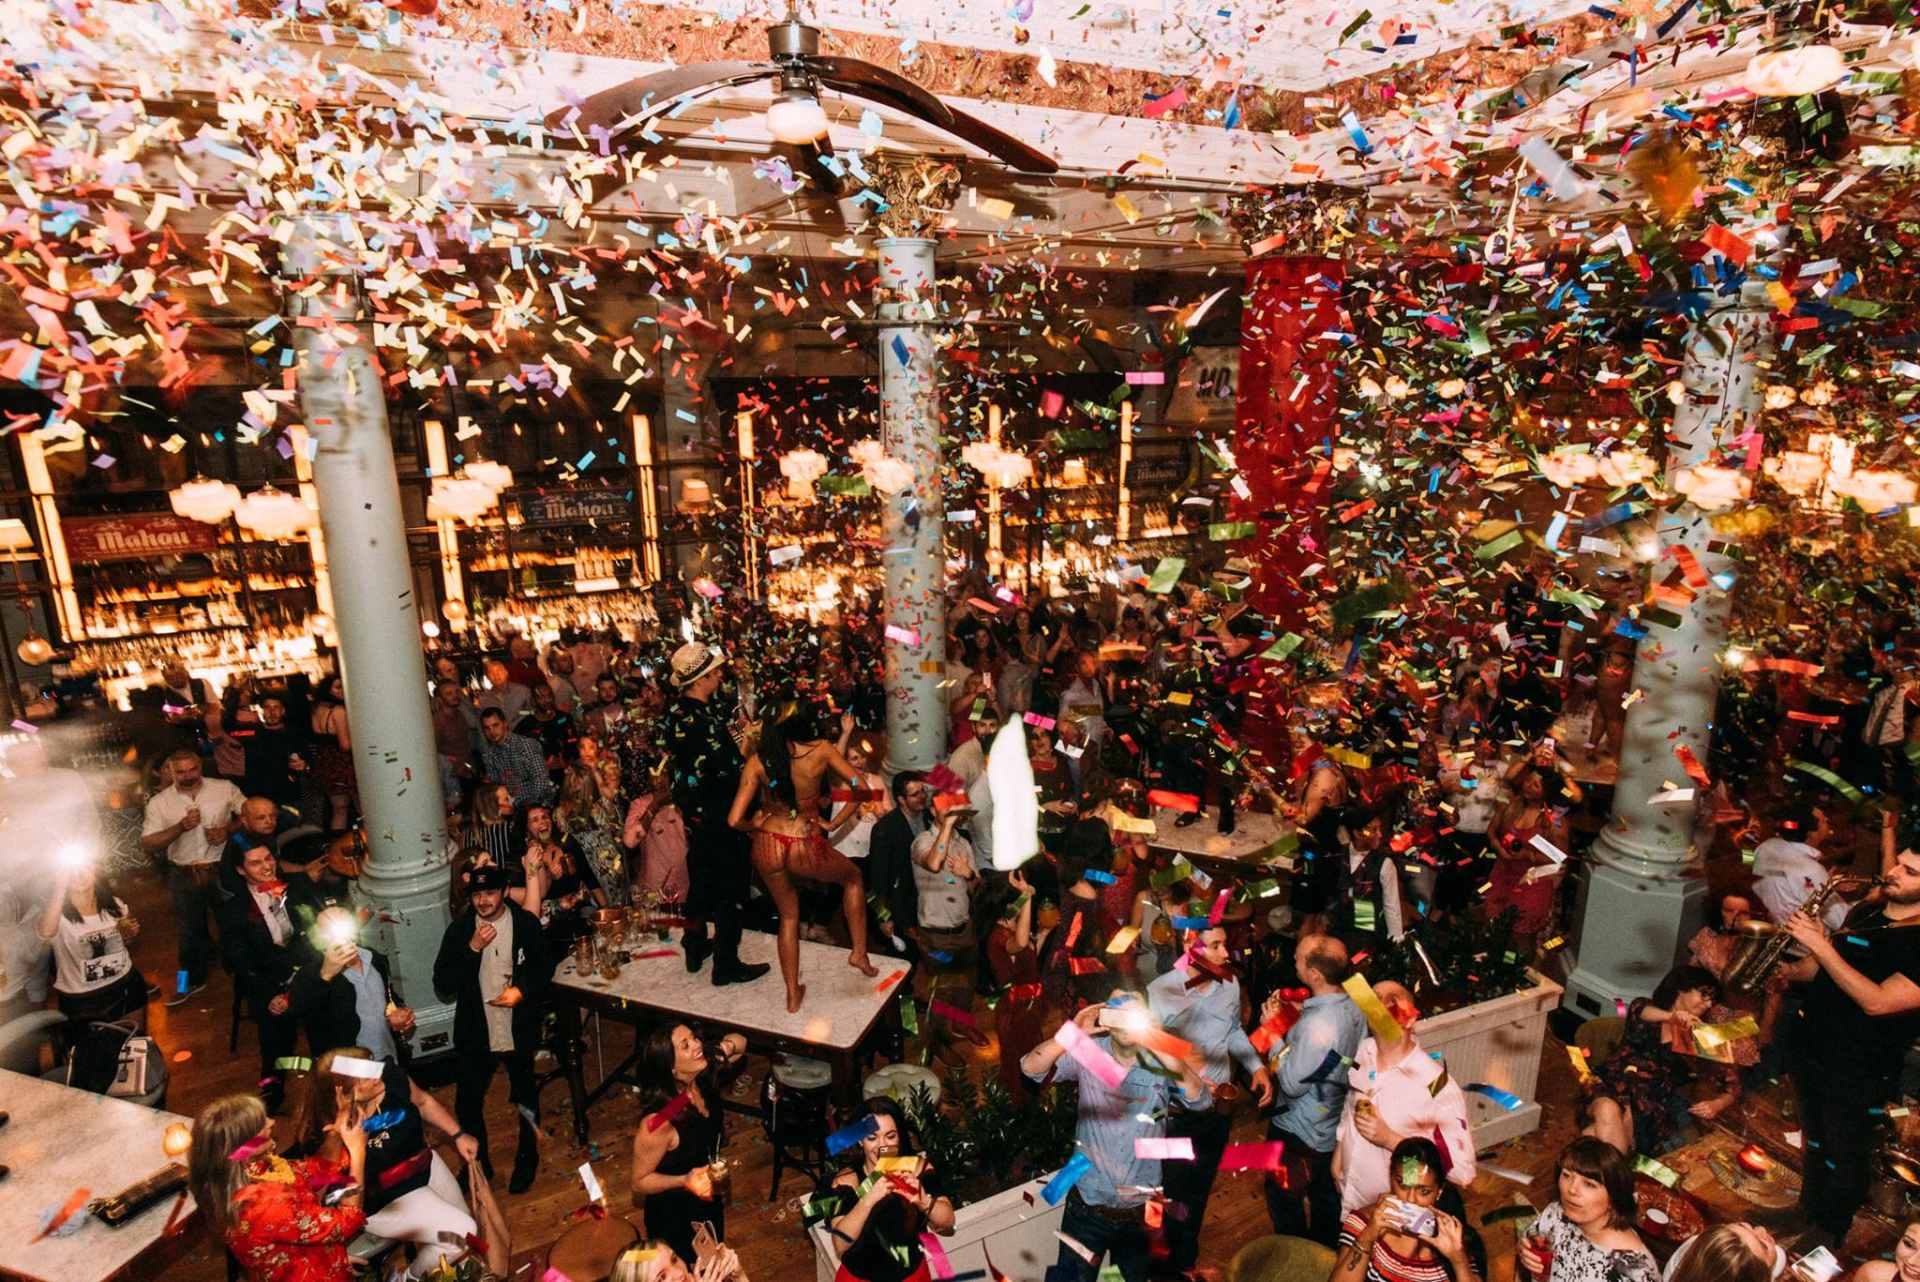 streamers-coming-from-ceiling-at-party-at-restaurant-revolucion-de-cuba